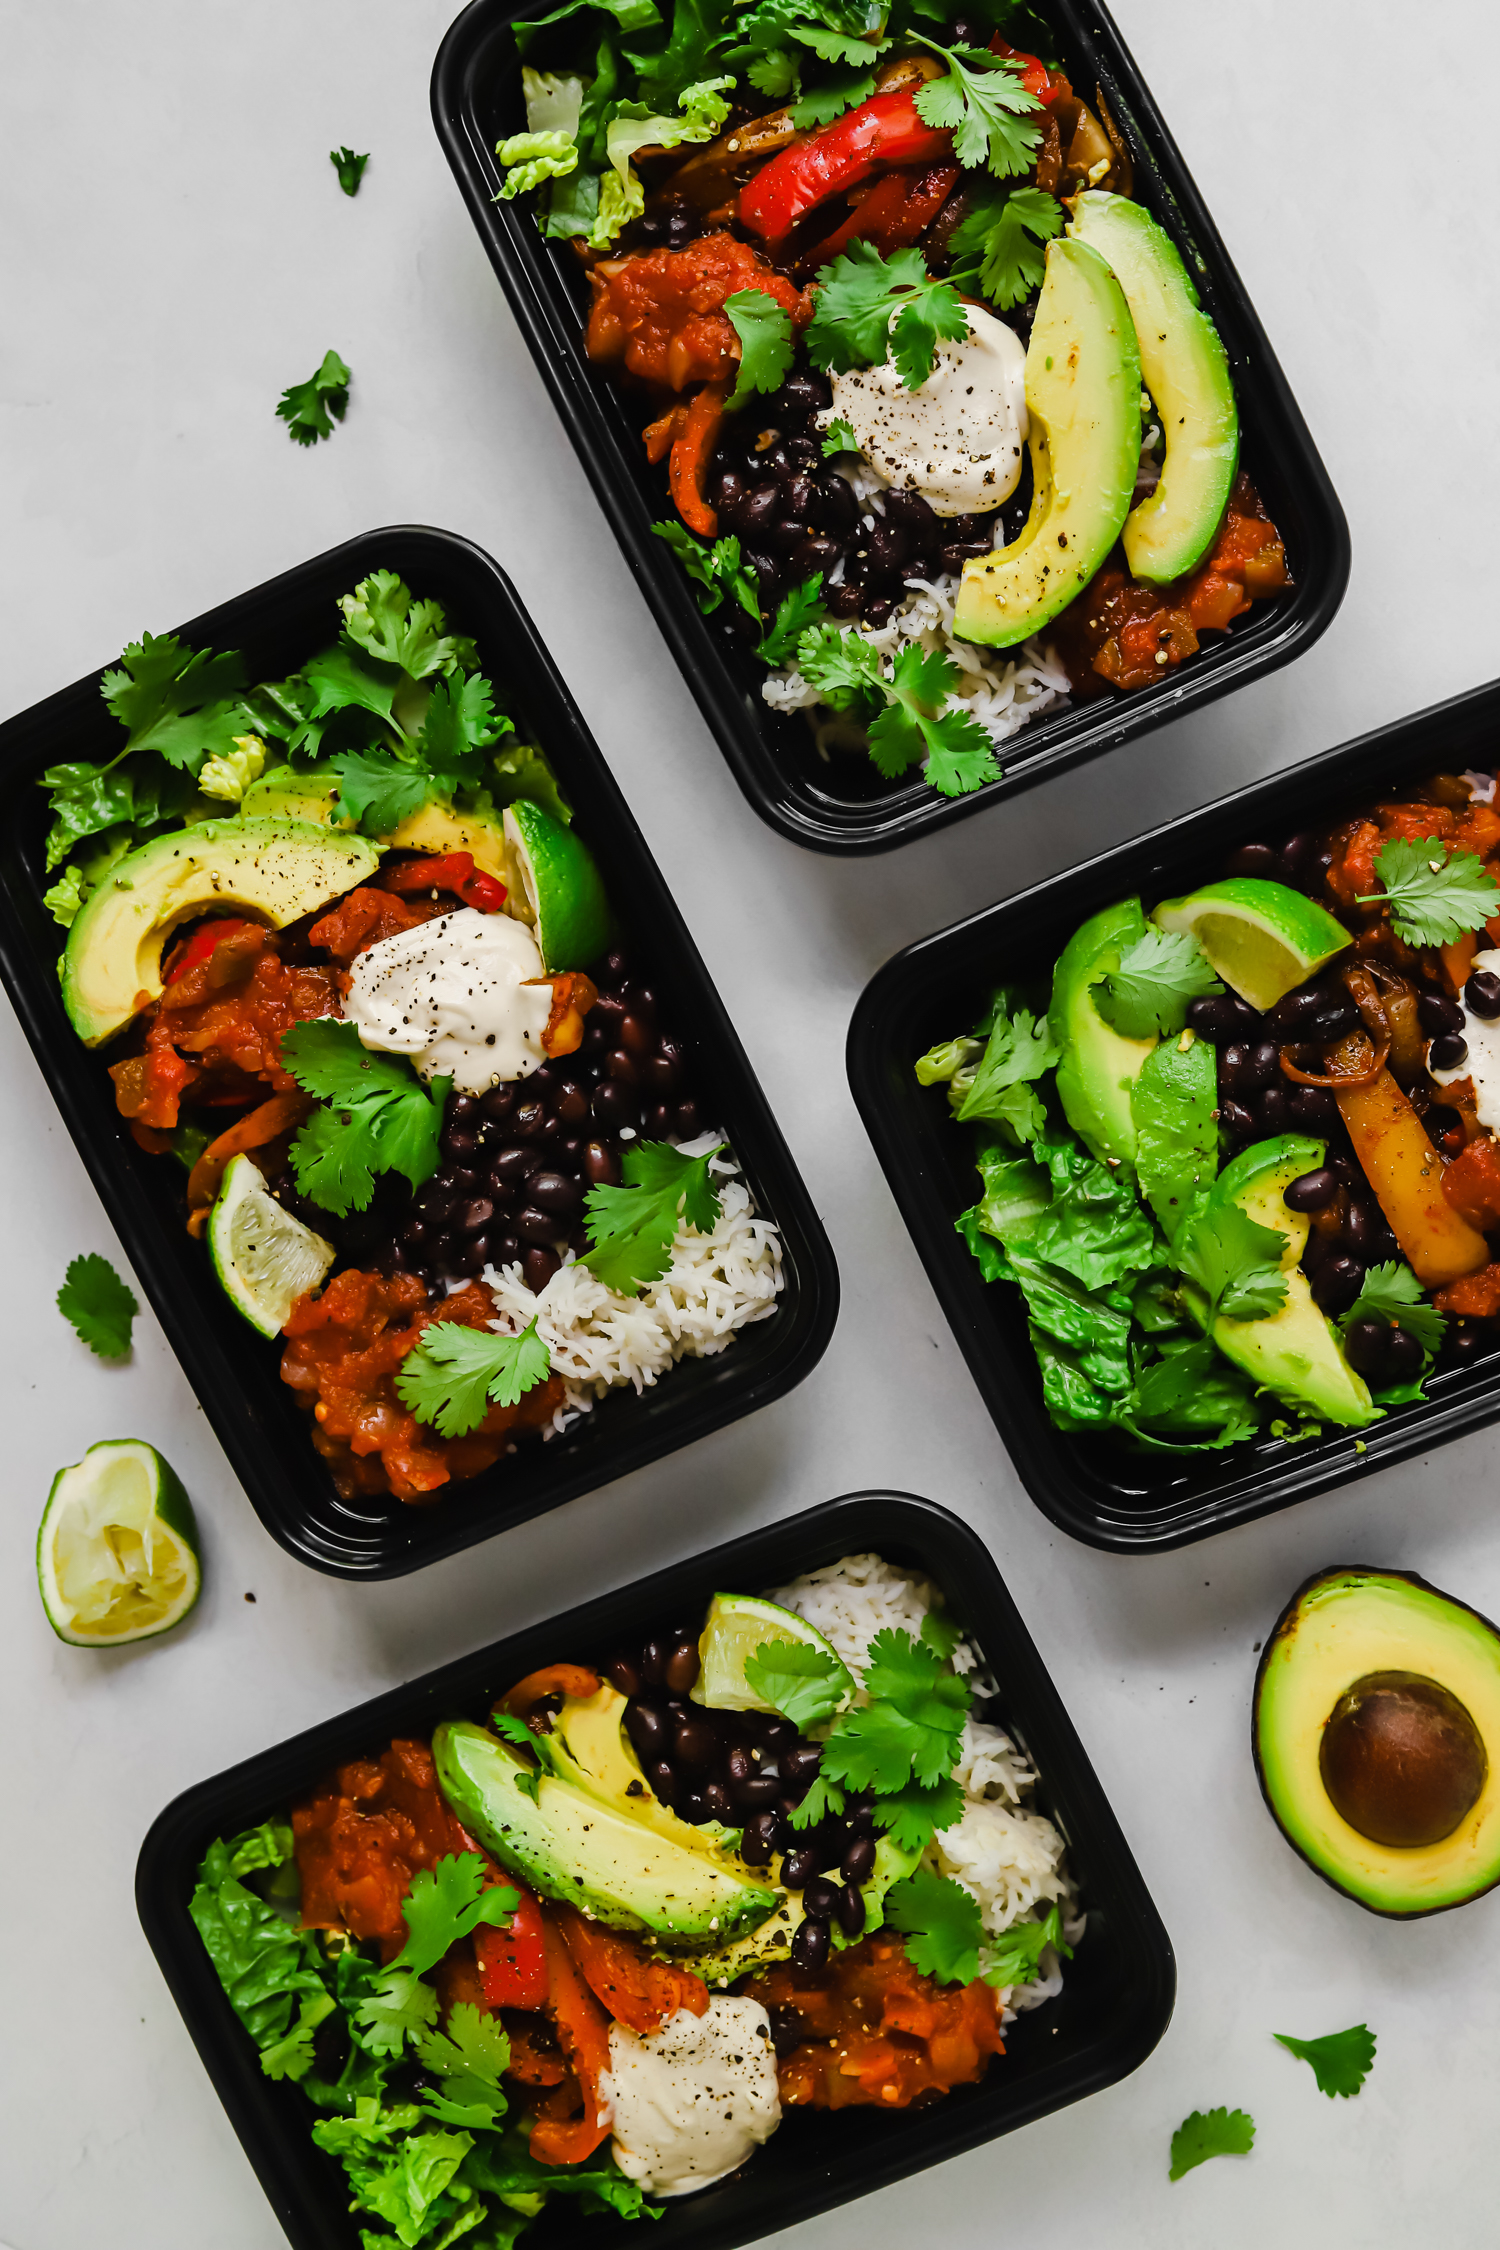 Meal prepped vegan burrito bowls in black plastic containers.